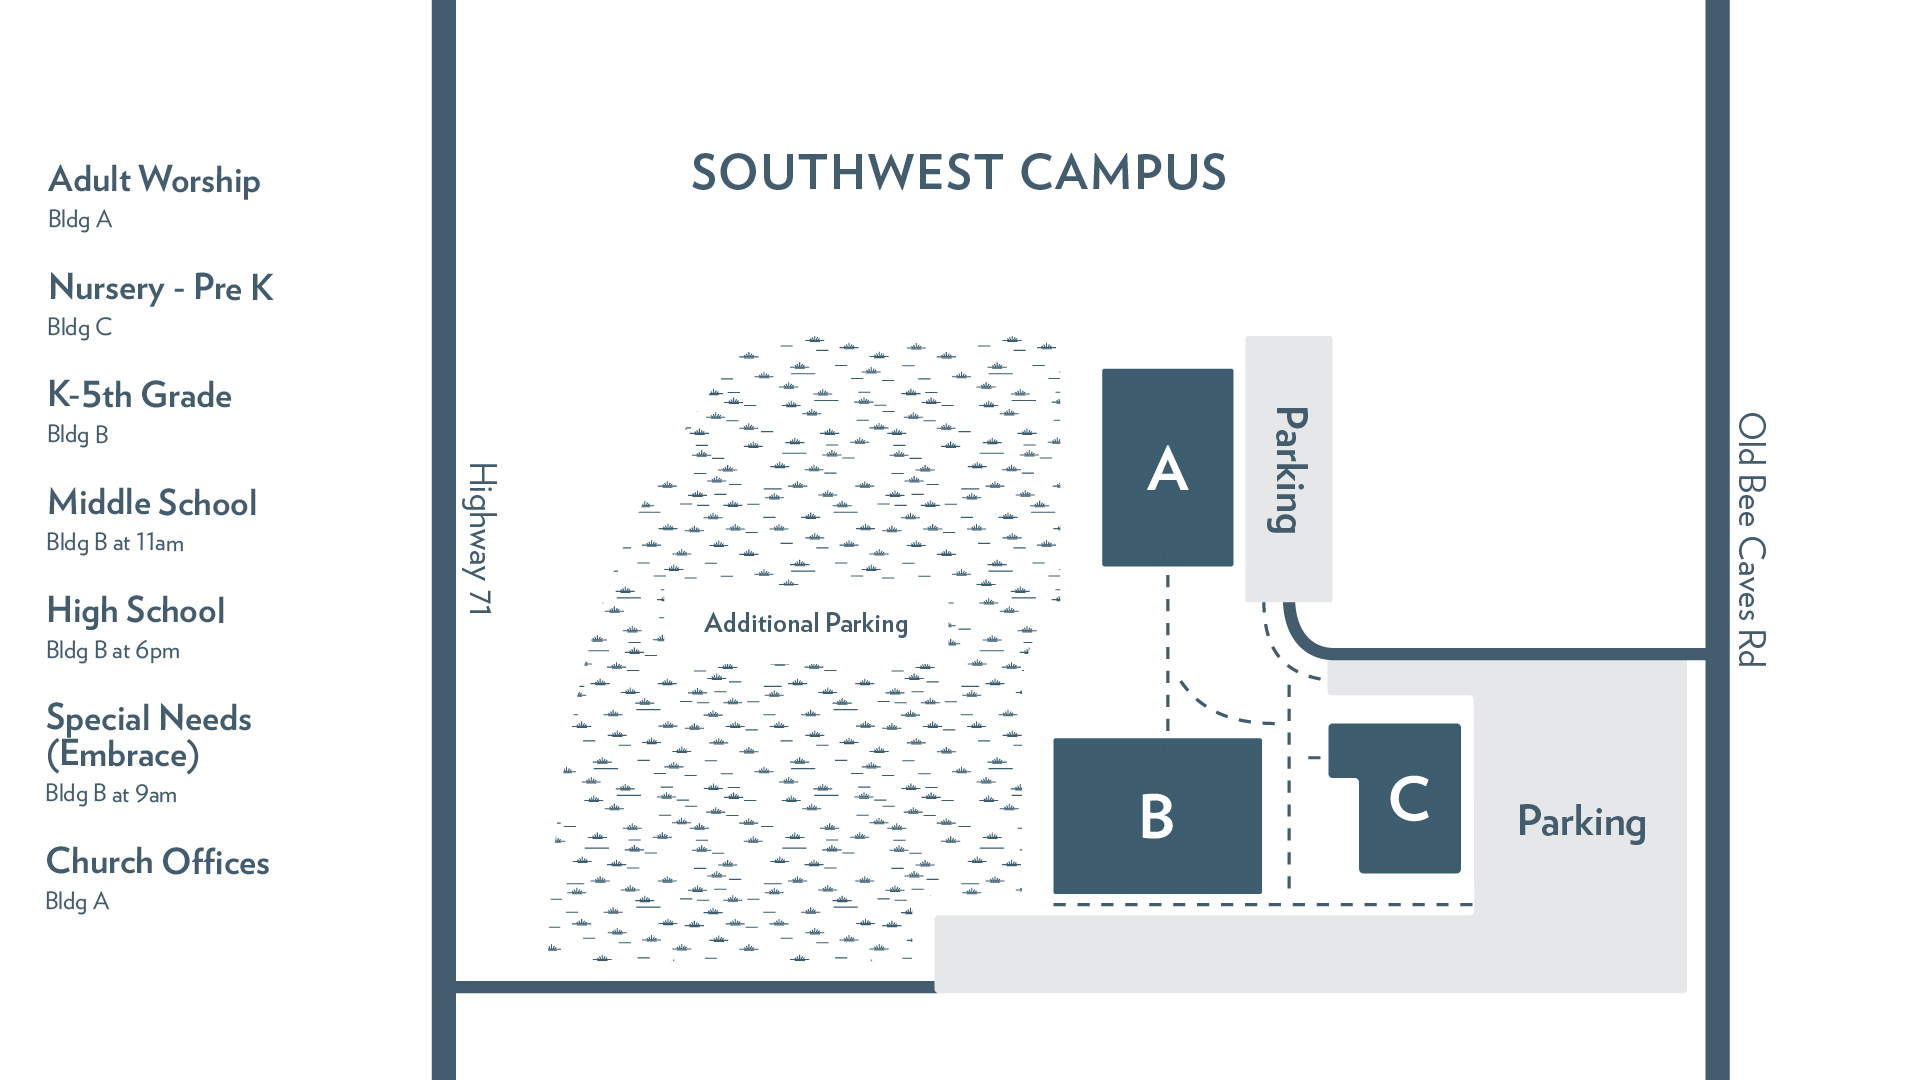 SW NEW MAP